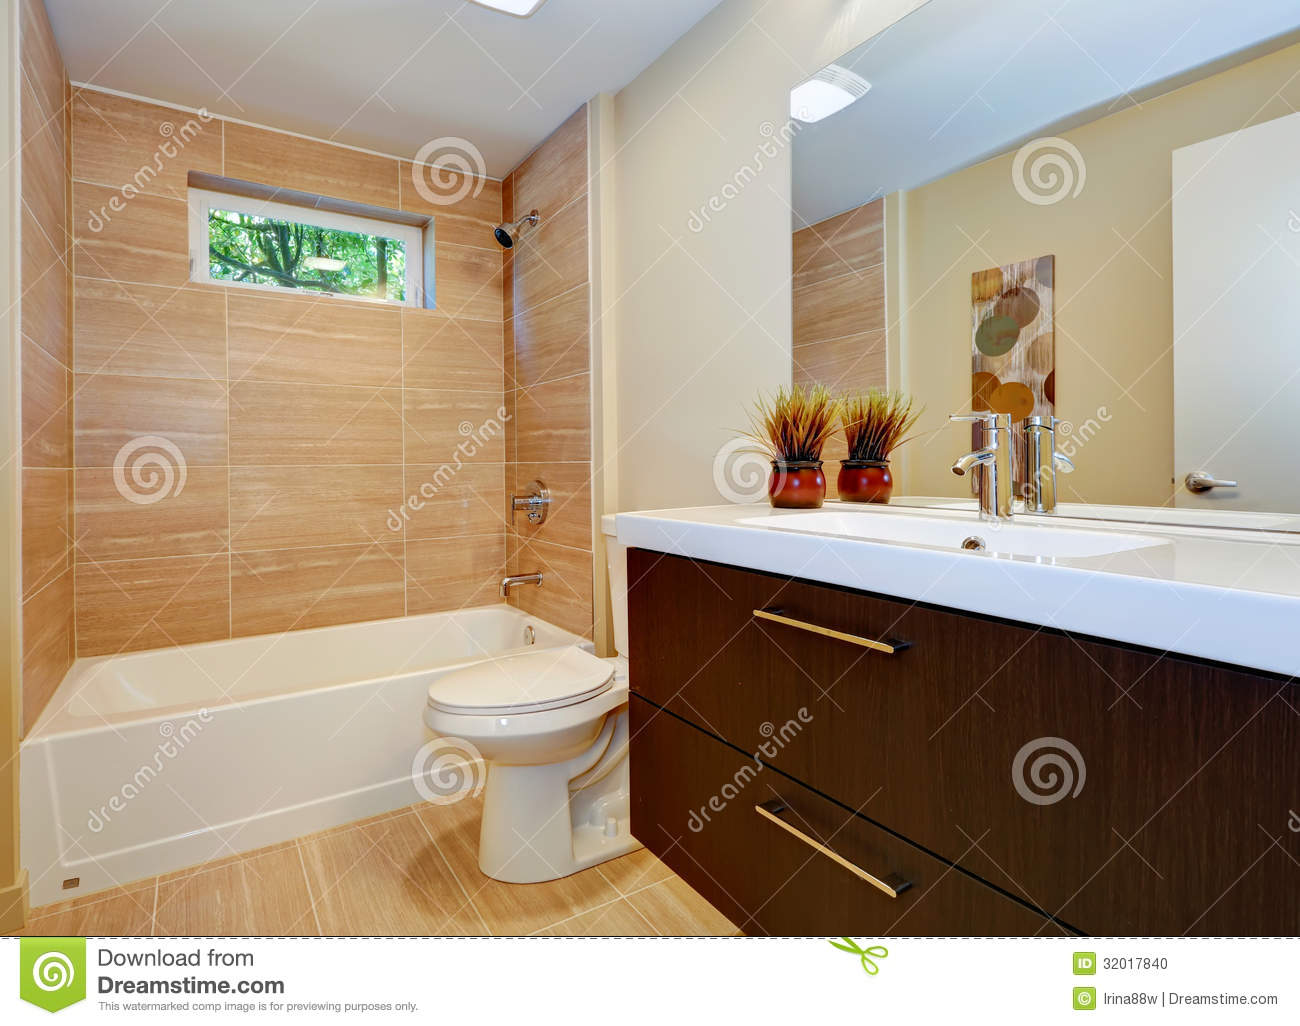 Modern new bathroom design with sink and white tub stock for Latest bathroom designs